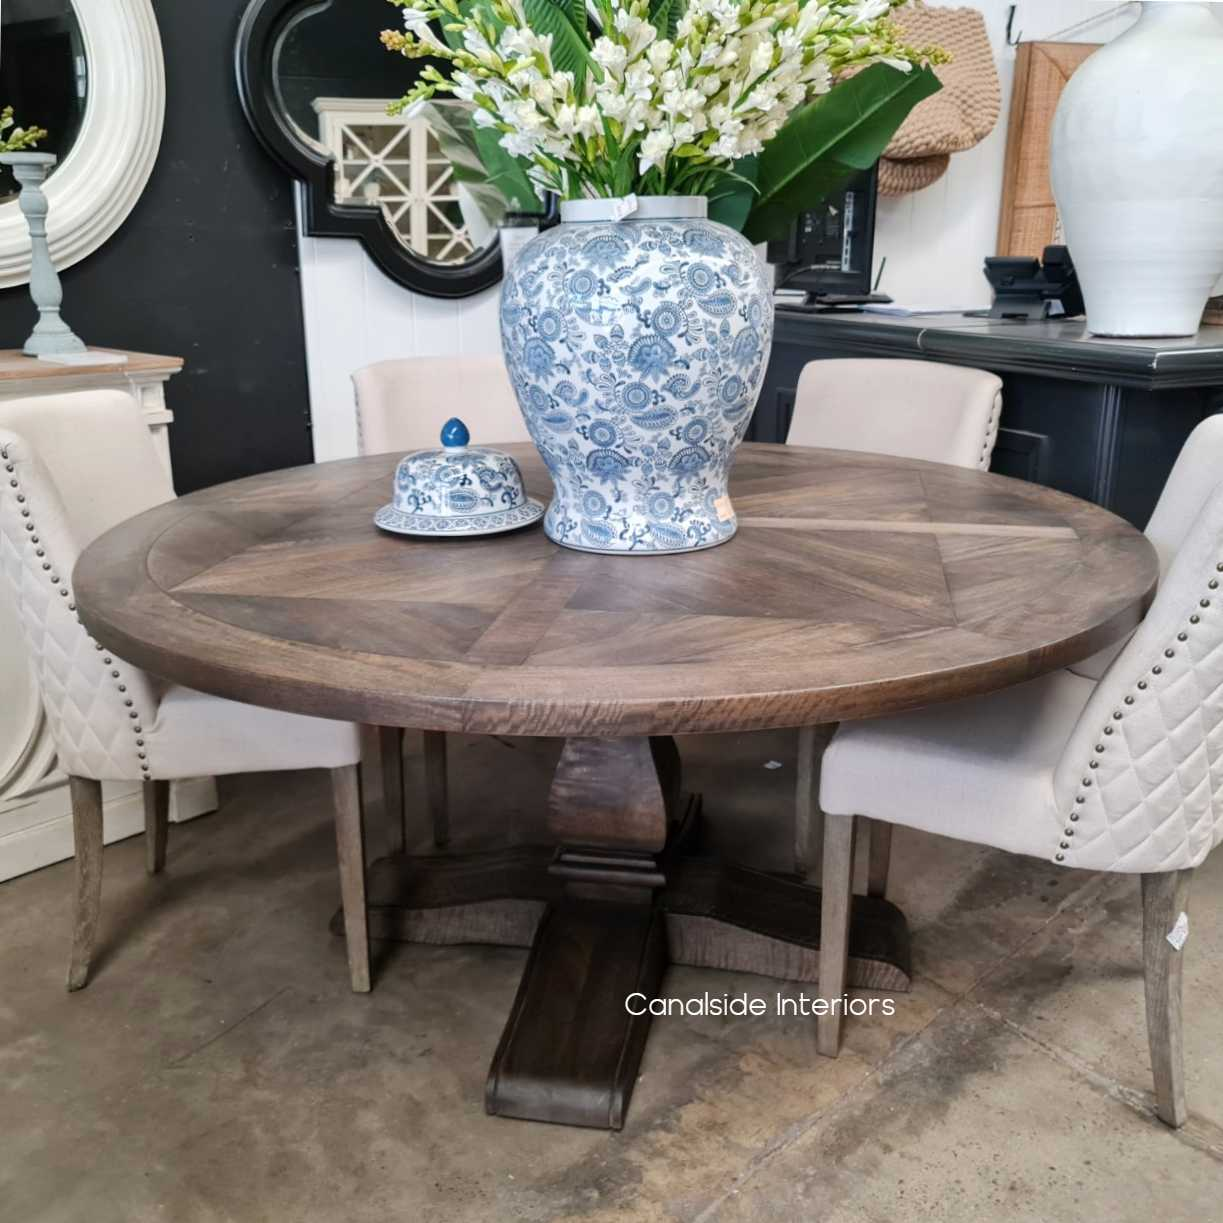 Bridgehampton Parquetry Round Dining Table tables, hamptons, hamptons, hampton table, provincial, plantation, dining tables, trestle base, dining room